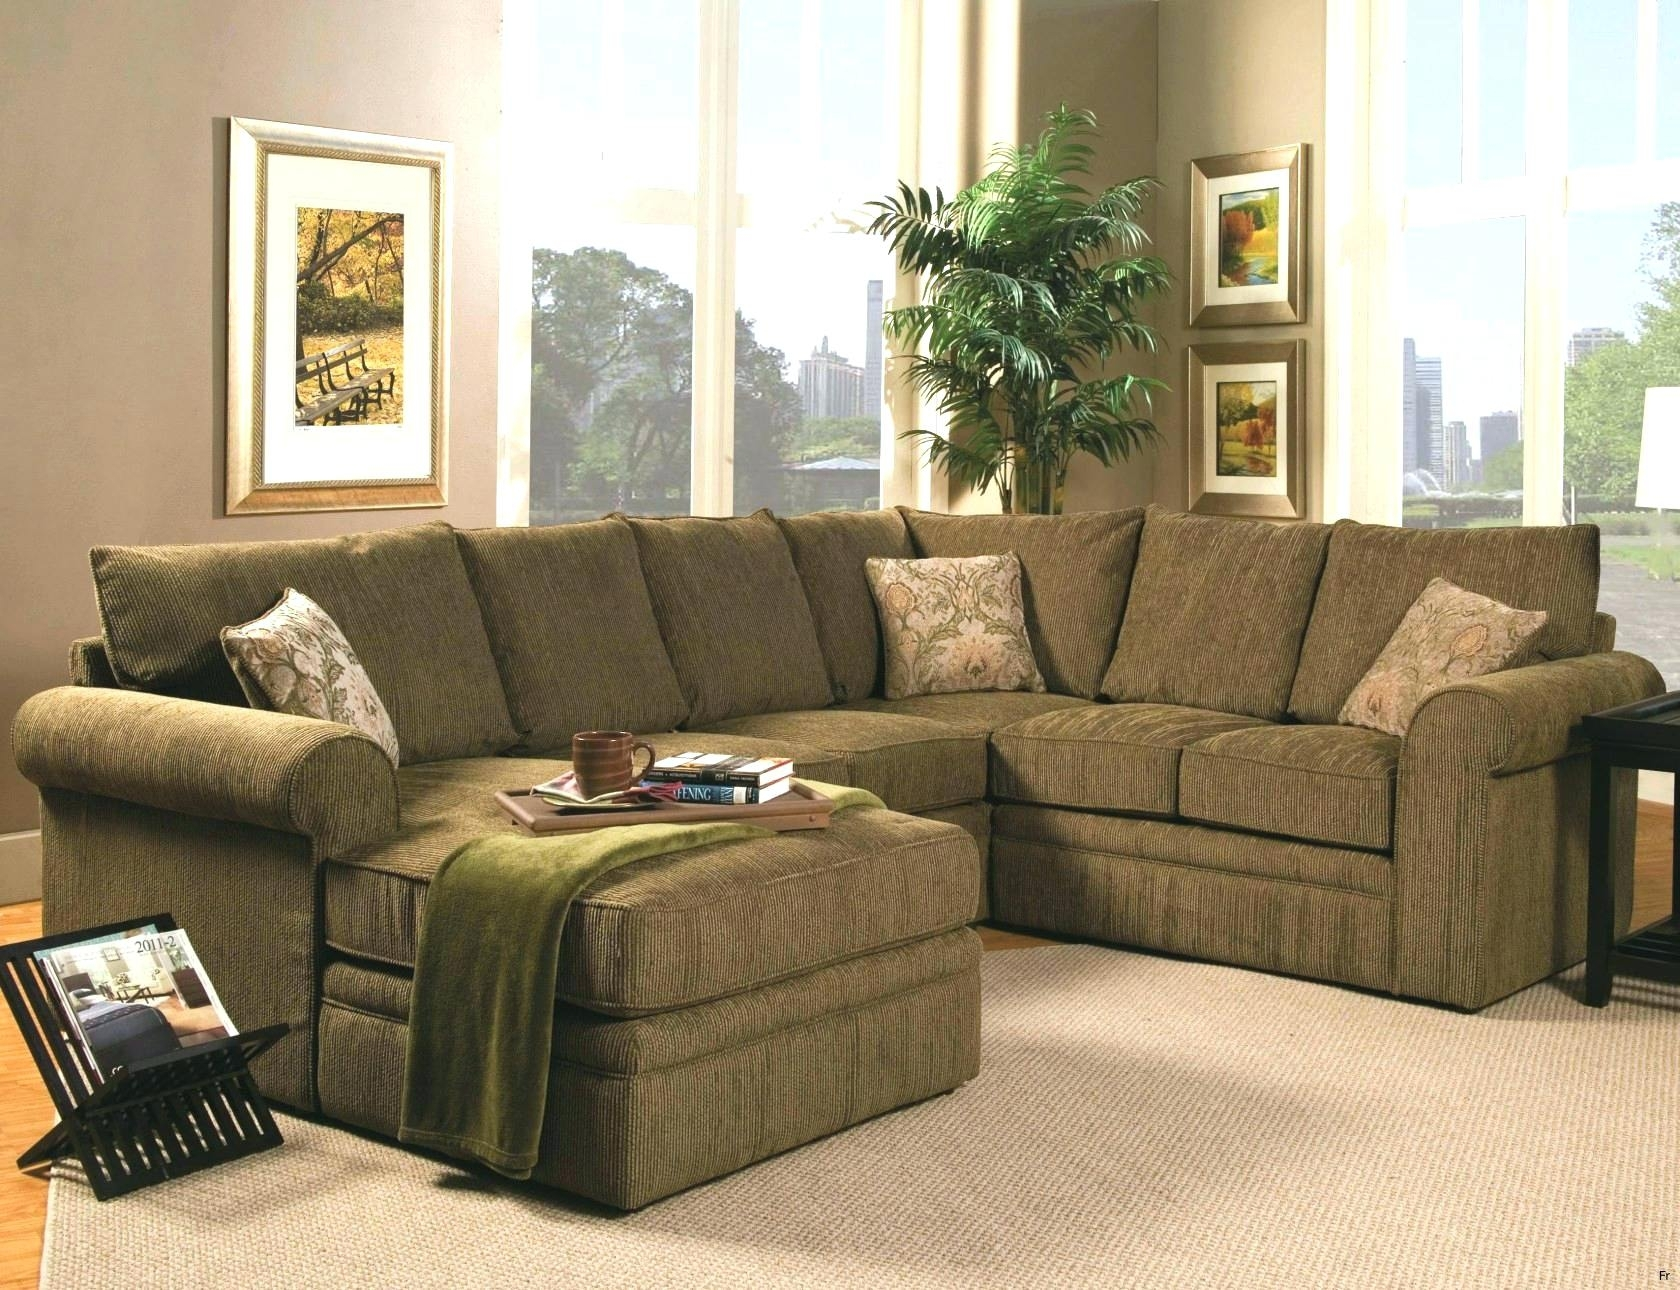 Green Sectional Couch Bay Wi Sectionals Sofas Olive Leather Pertaining To Green Sectional Sofas With Chaise (View 8 of 10)